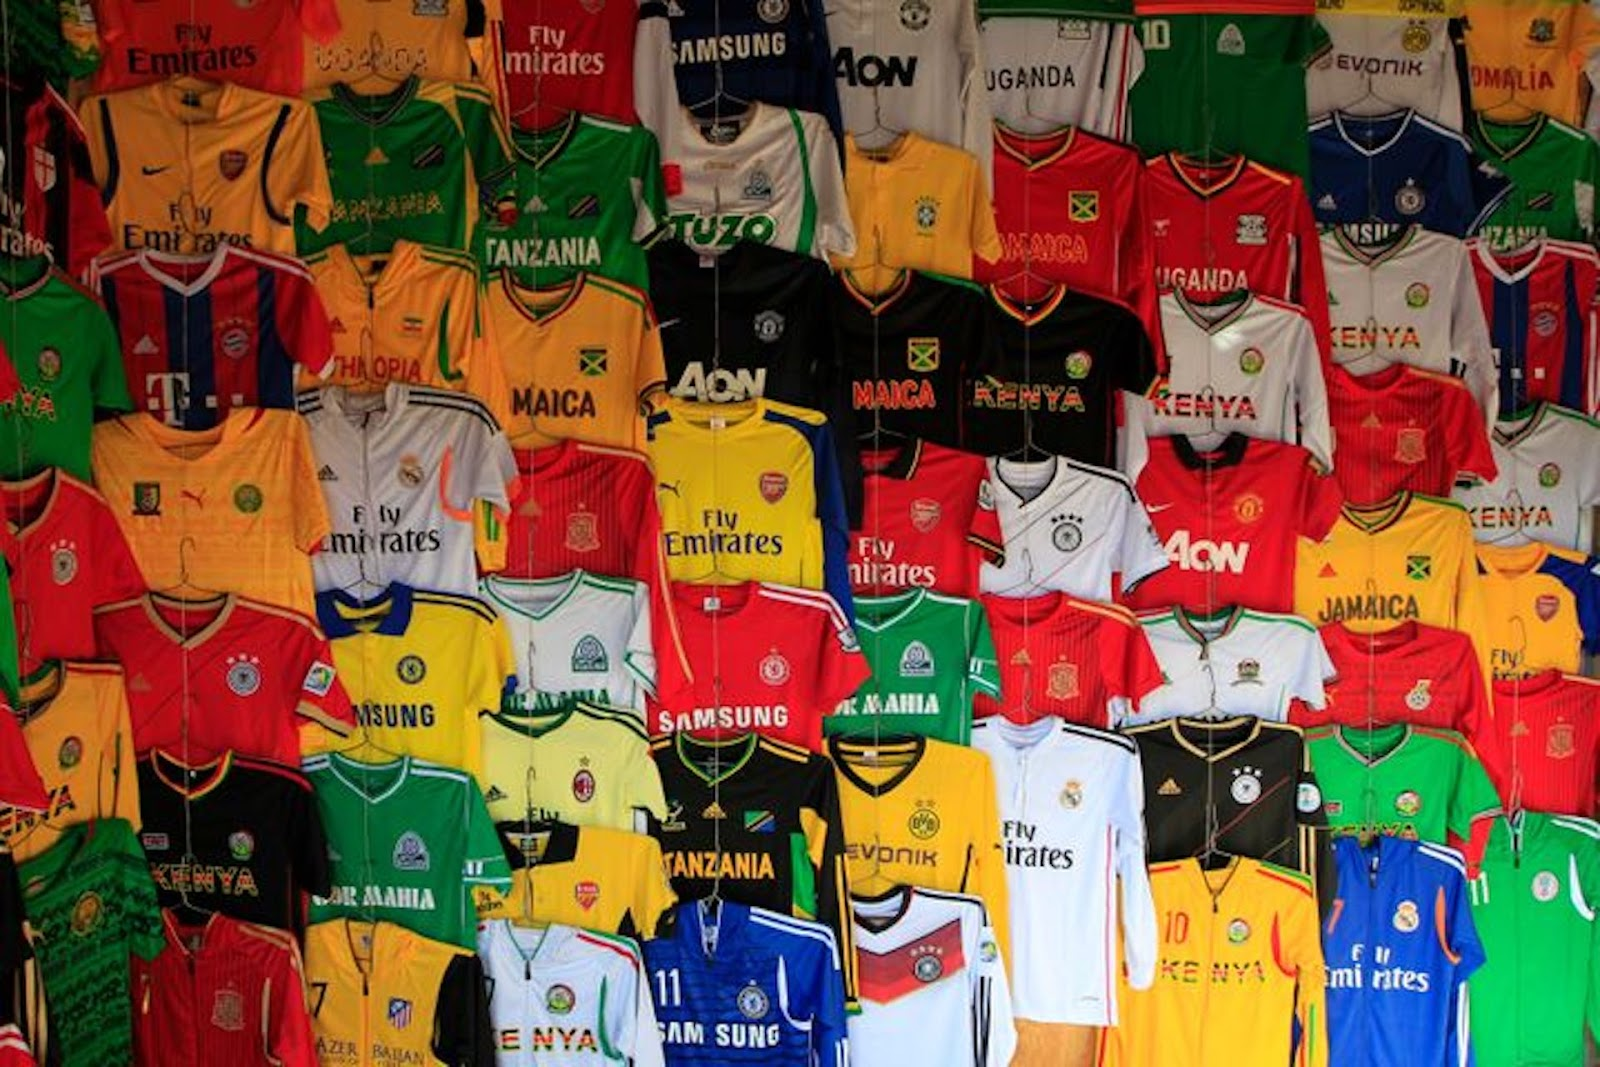 used soccer jersey display